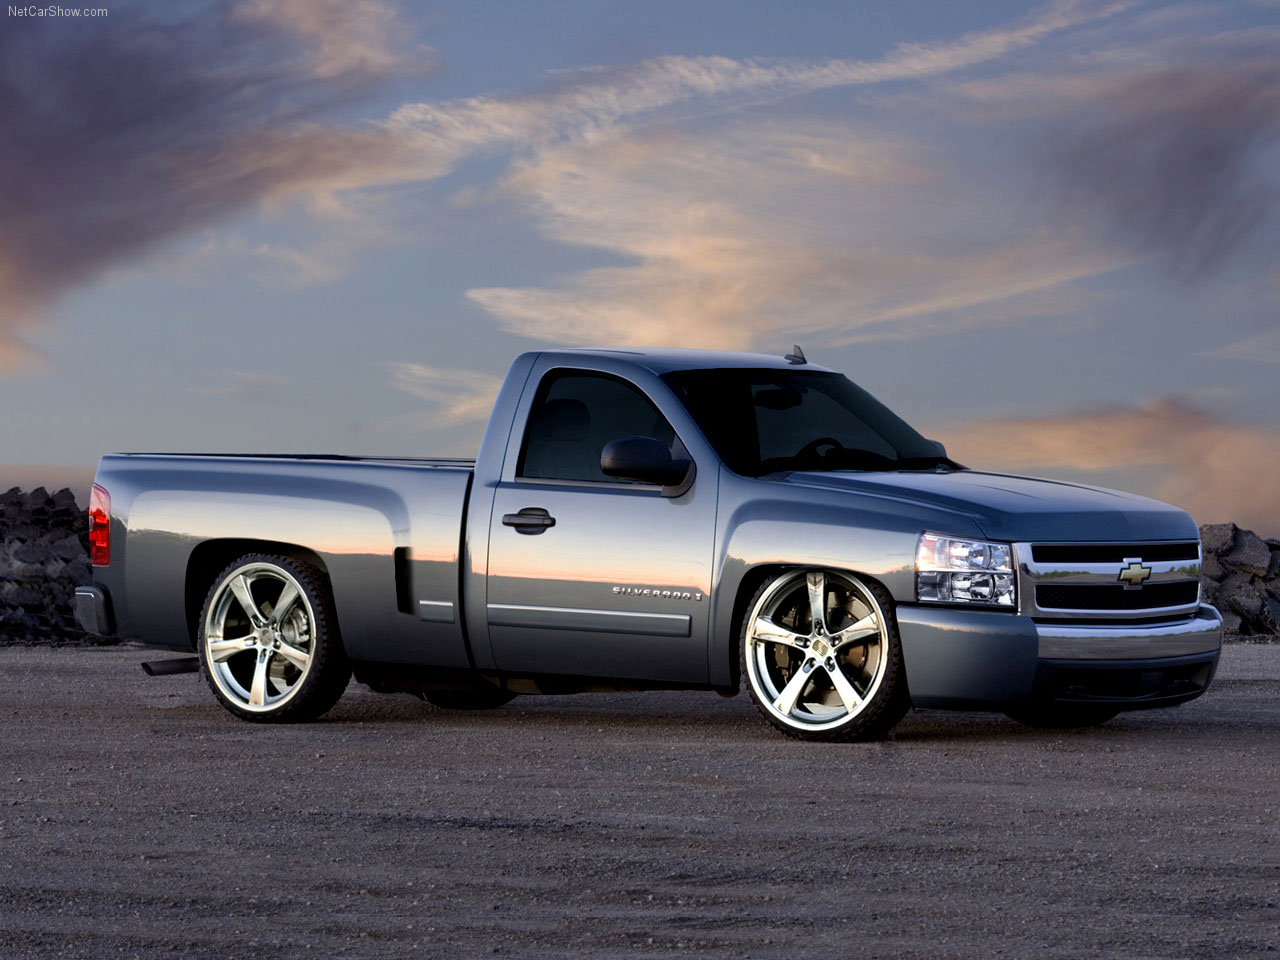 Chevy Truck Wallpapers 6625 Hd Wallpapers in Cars   Imagescicom 1280x960